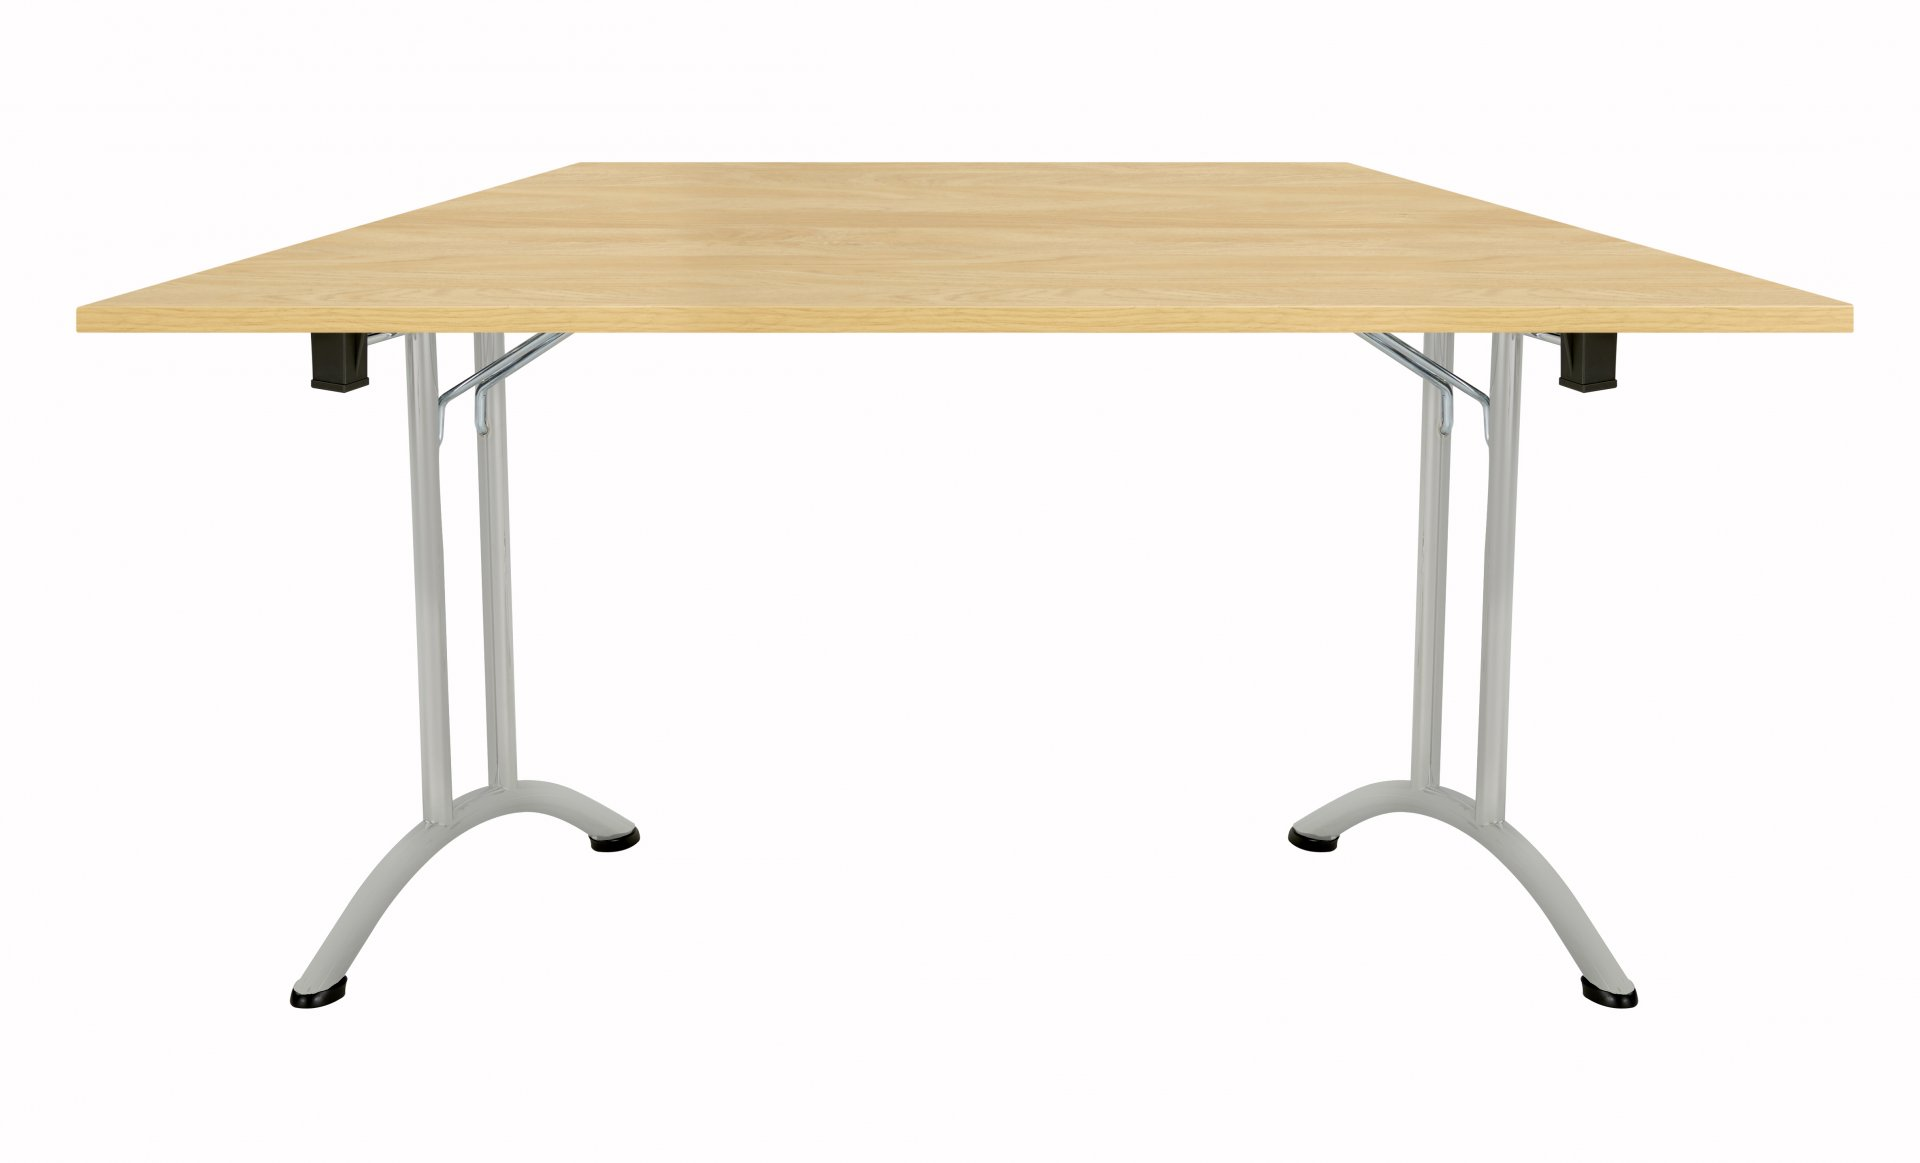 Union Trapezoidal 140 Folding Meeting Table - Nova Oak with Silver Frame